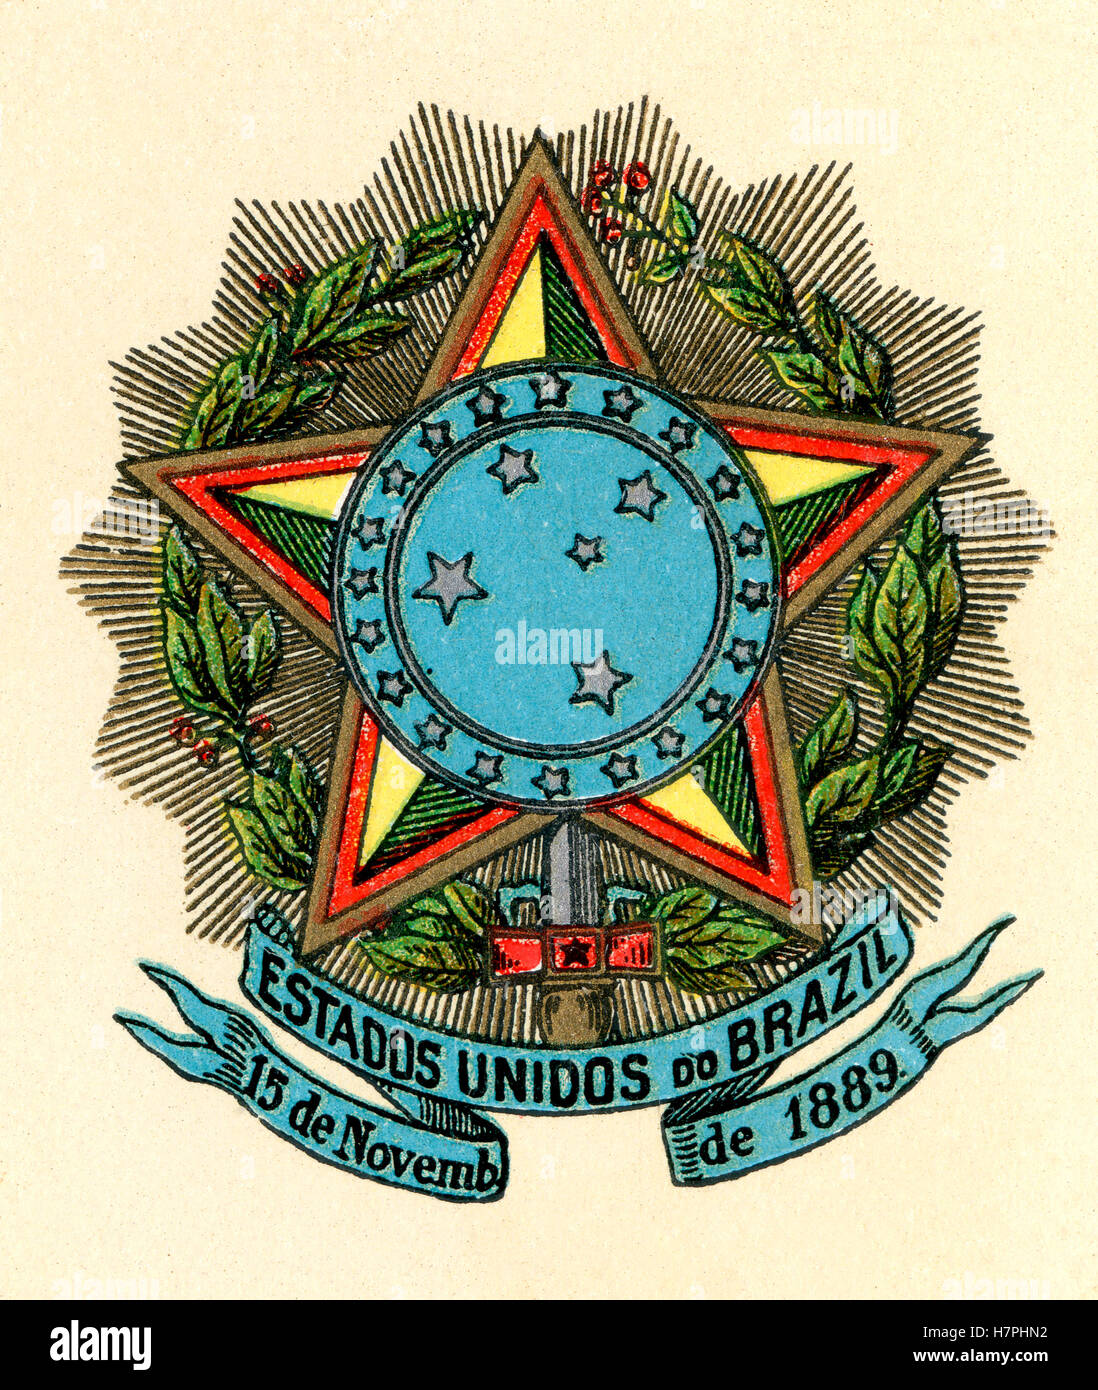 Coat of arms of the United States of Brazil, 1889–1968. - Stock Image